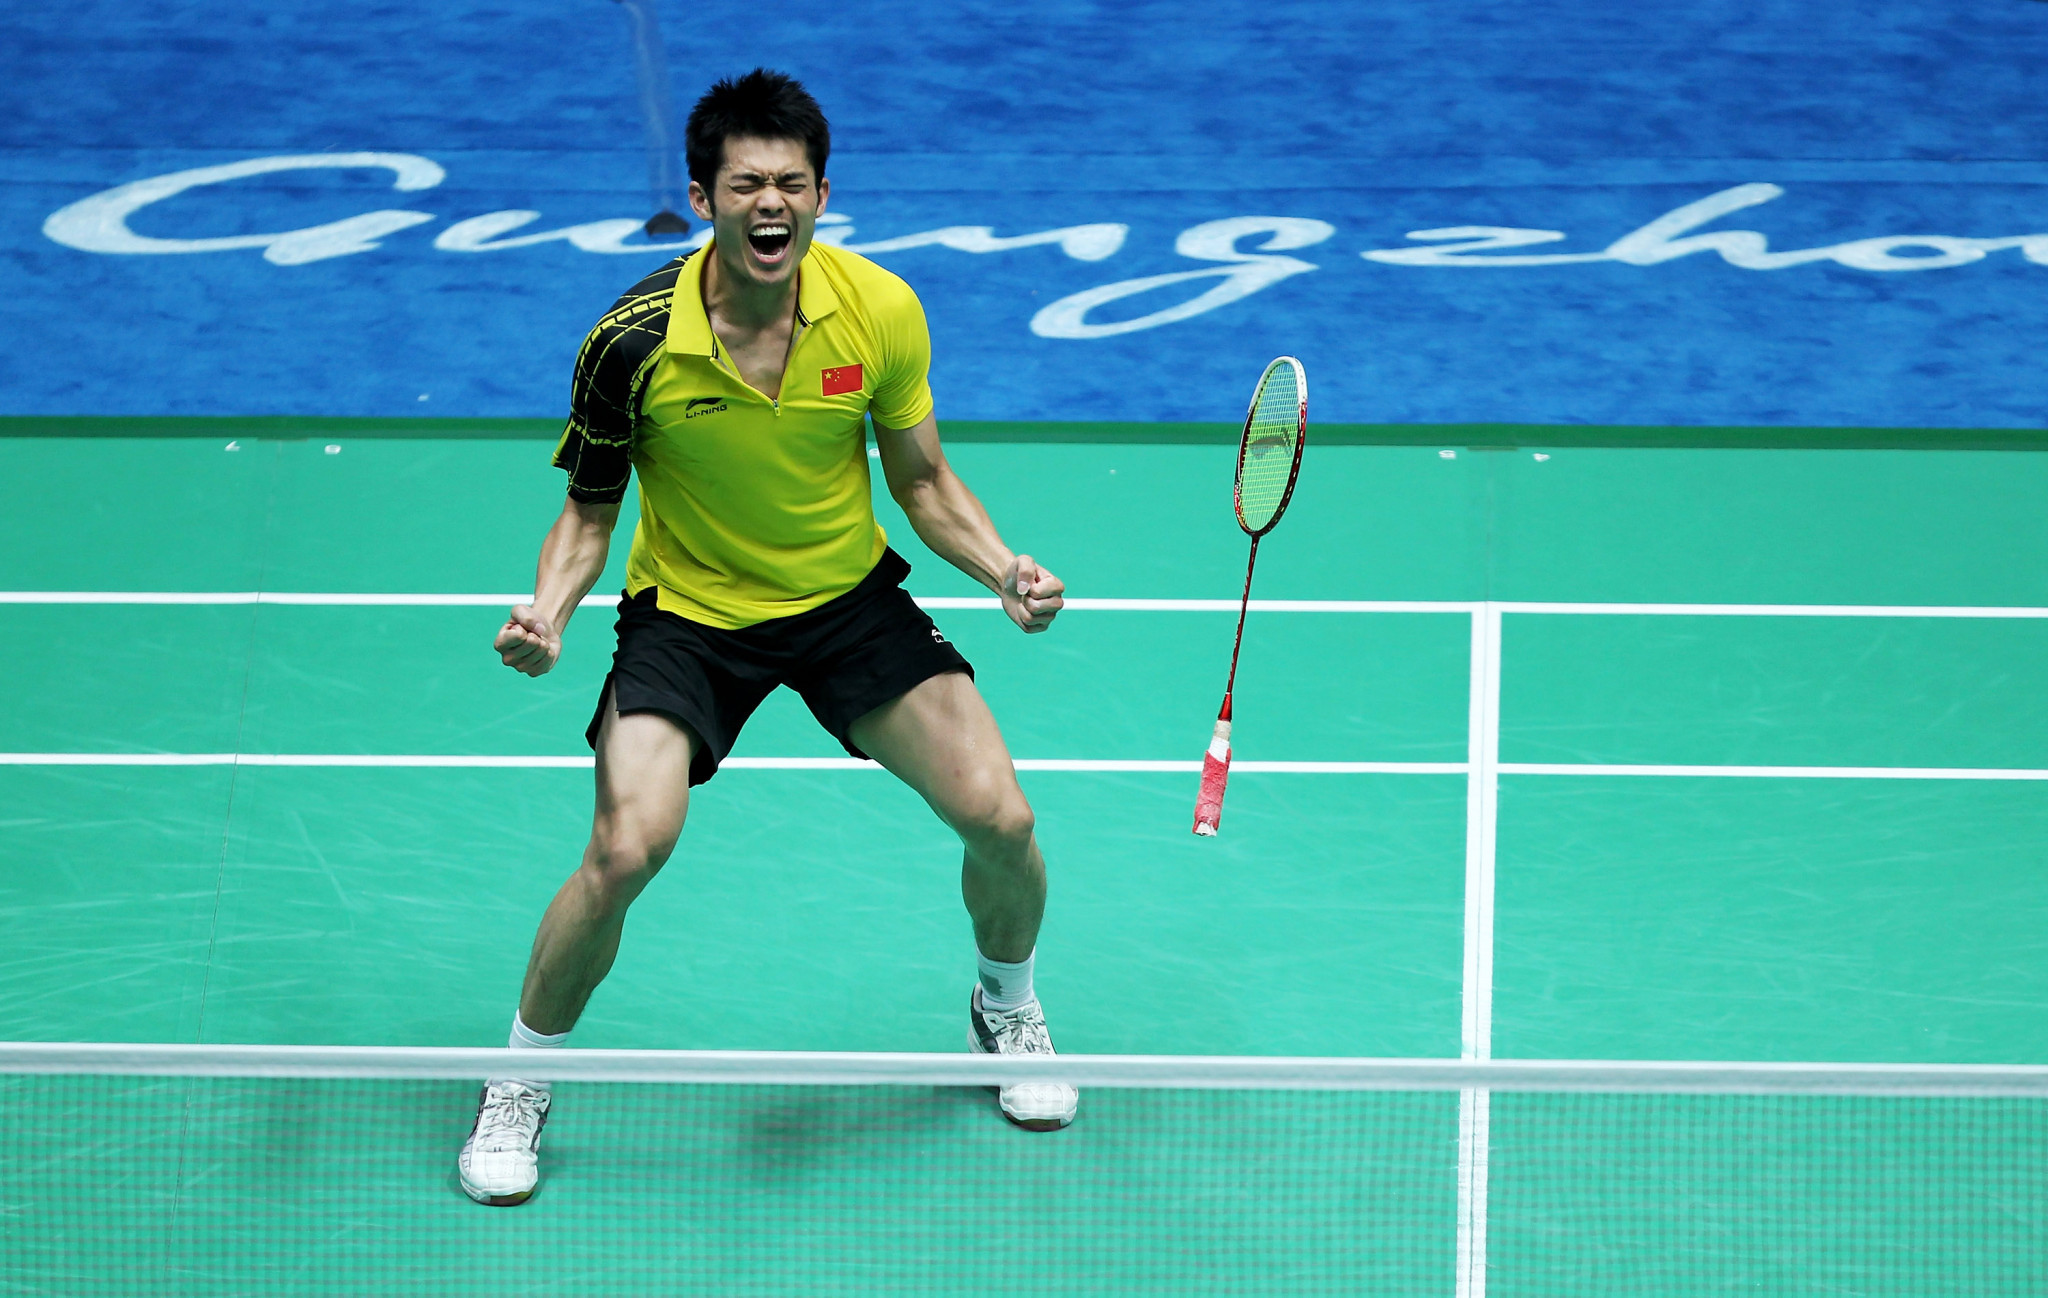 Chinese badminton star Lin Dan was a high-profile retirement before Tokyo 2020 ©Getty Images